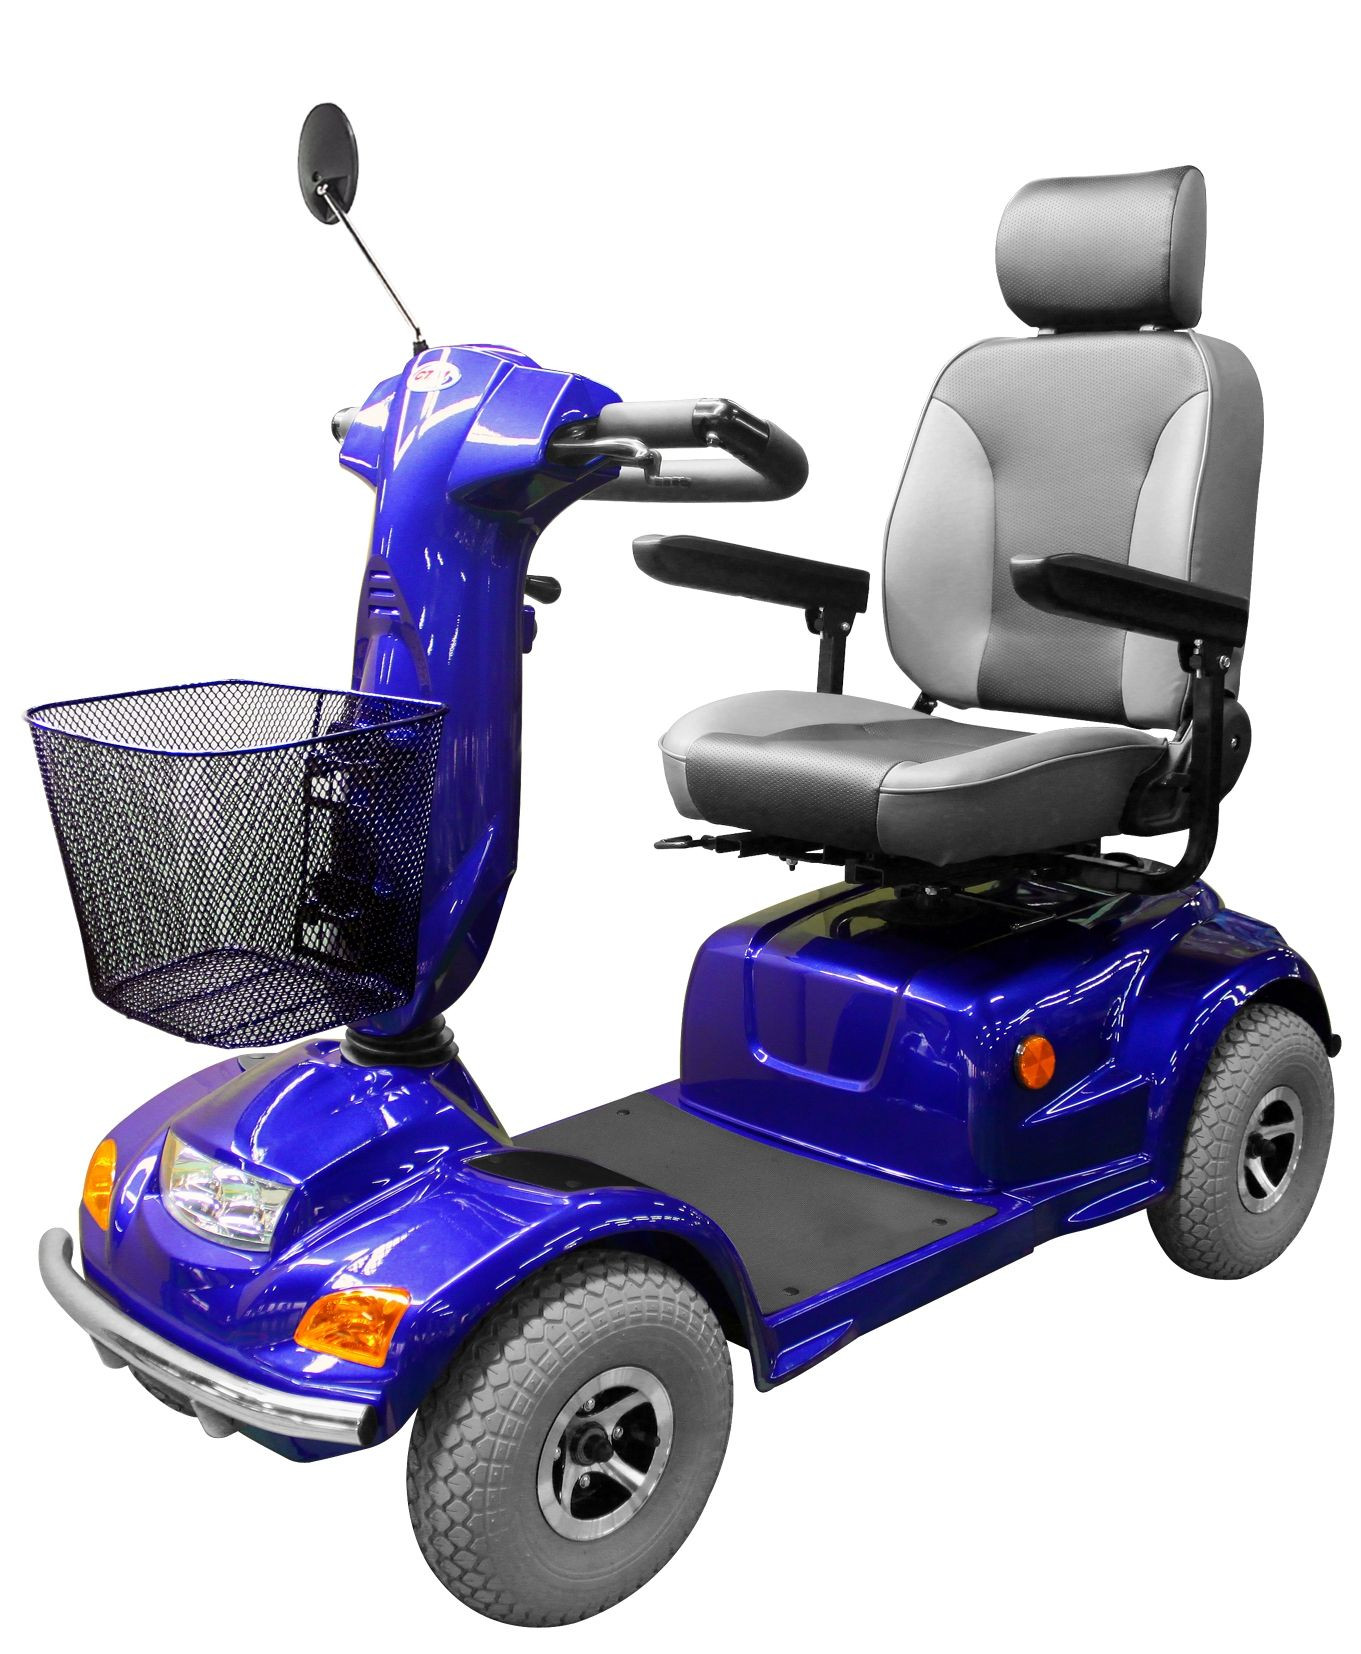 ctm hs 890 mobility scooter for sale lowest prices